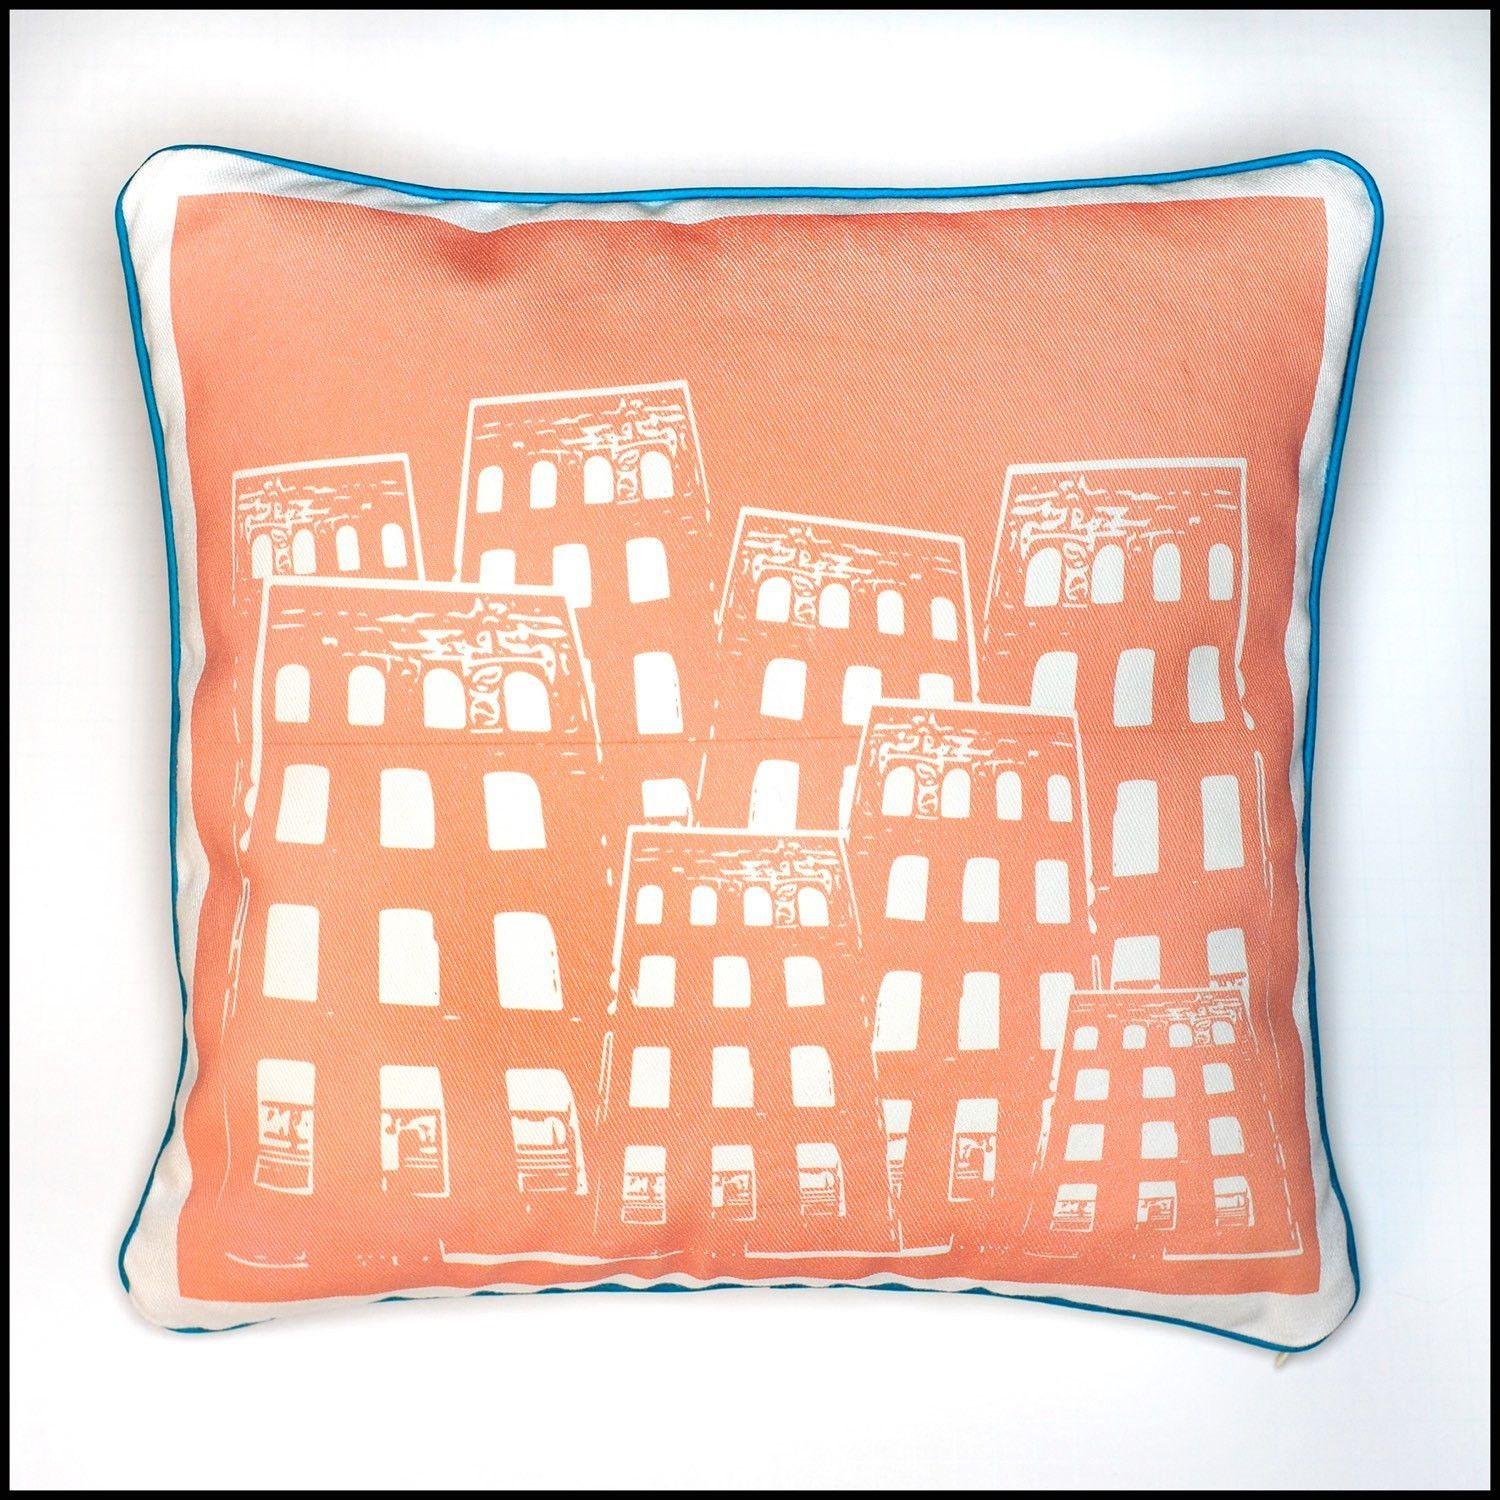 covers pillows colorful decor pillow boho living cool room soopee decorative peach throw stylish bohemian couch